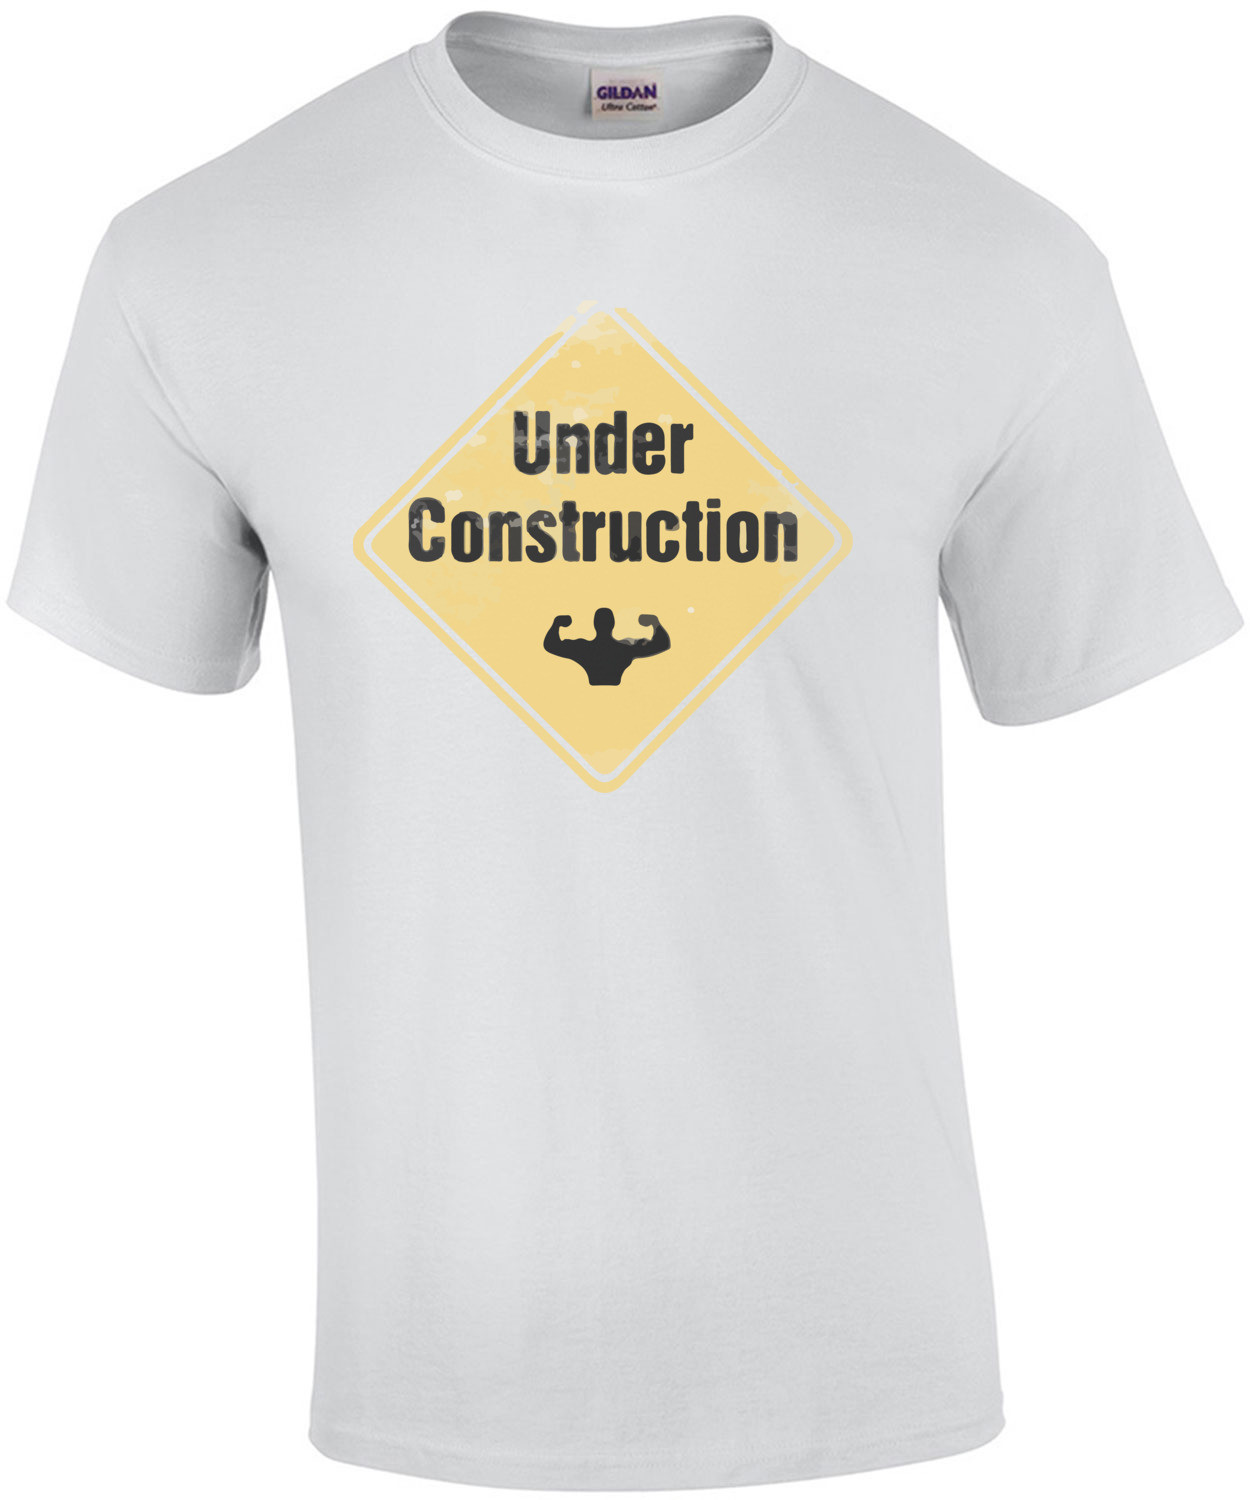 Under Construction Exercise T-Shirt